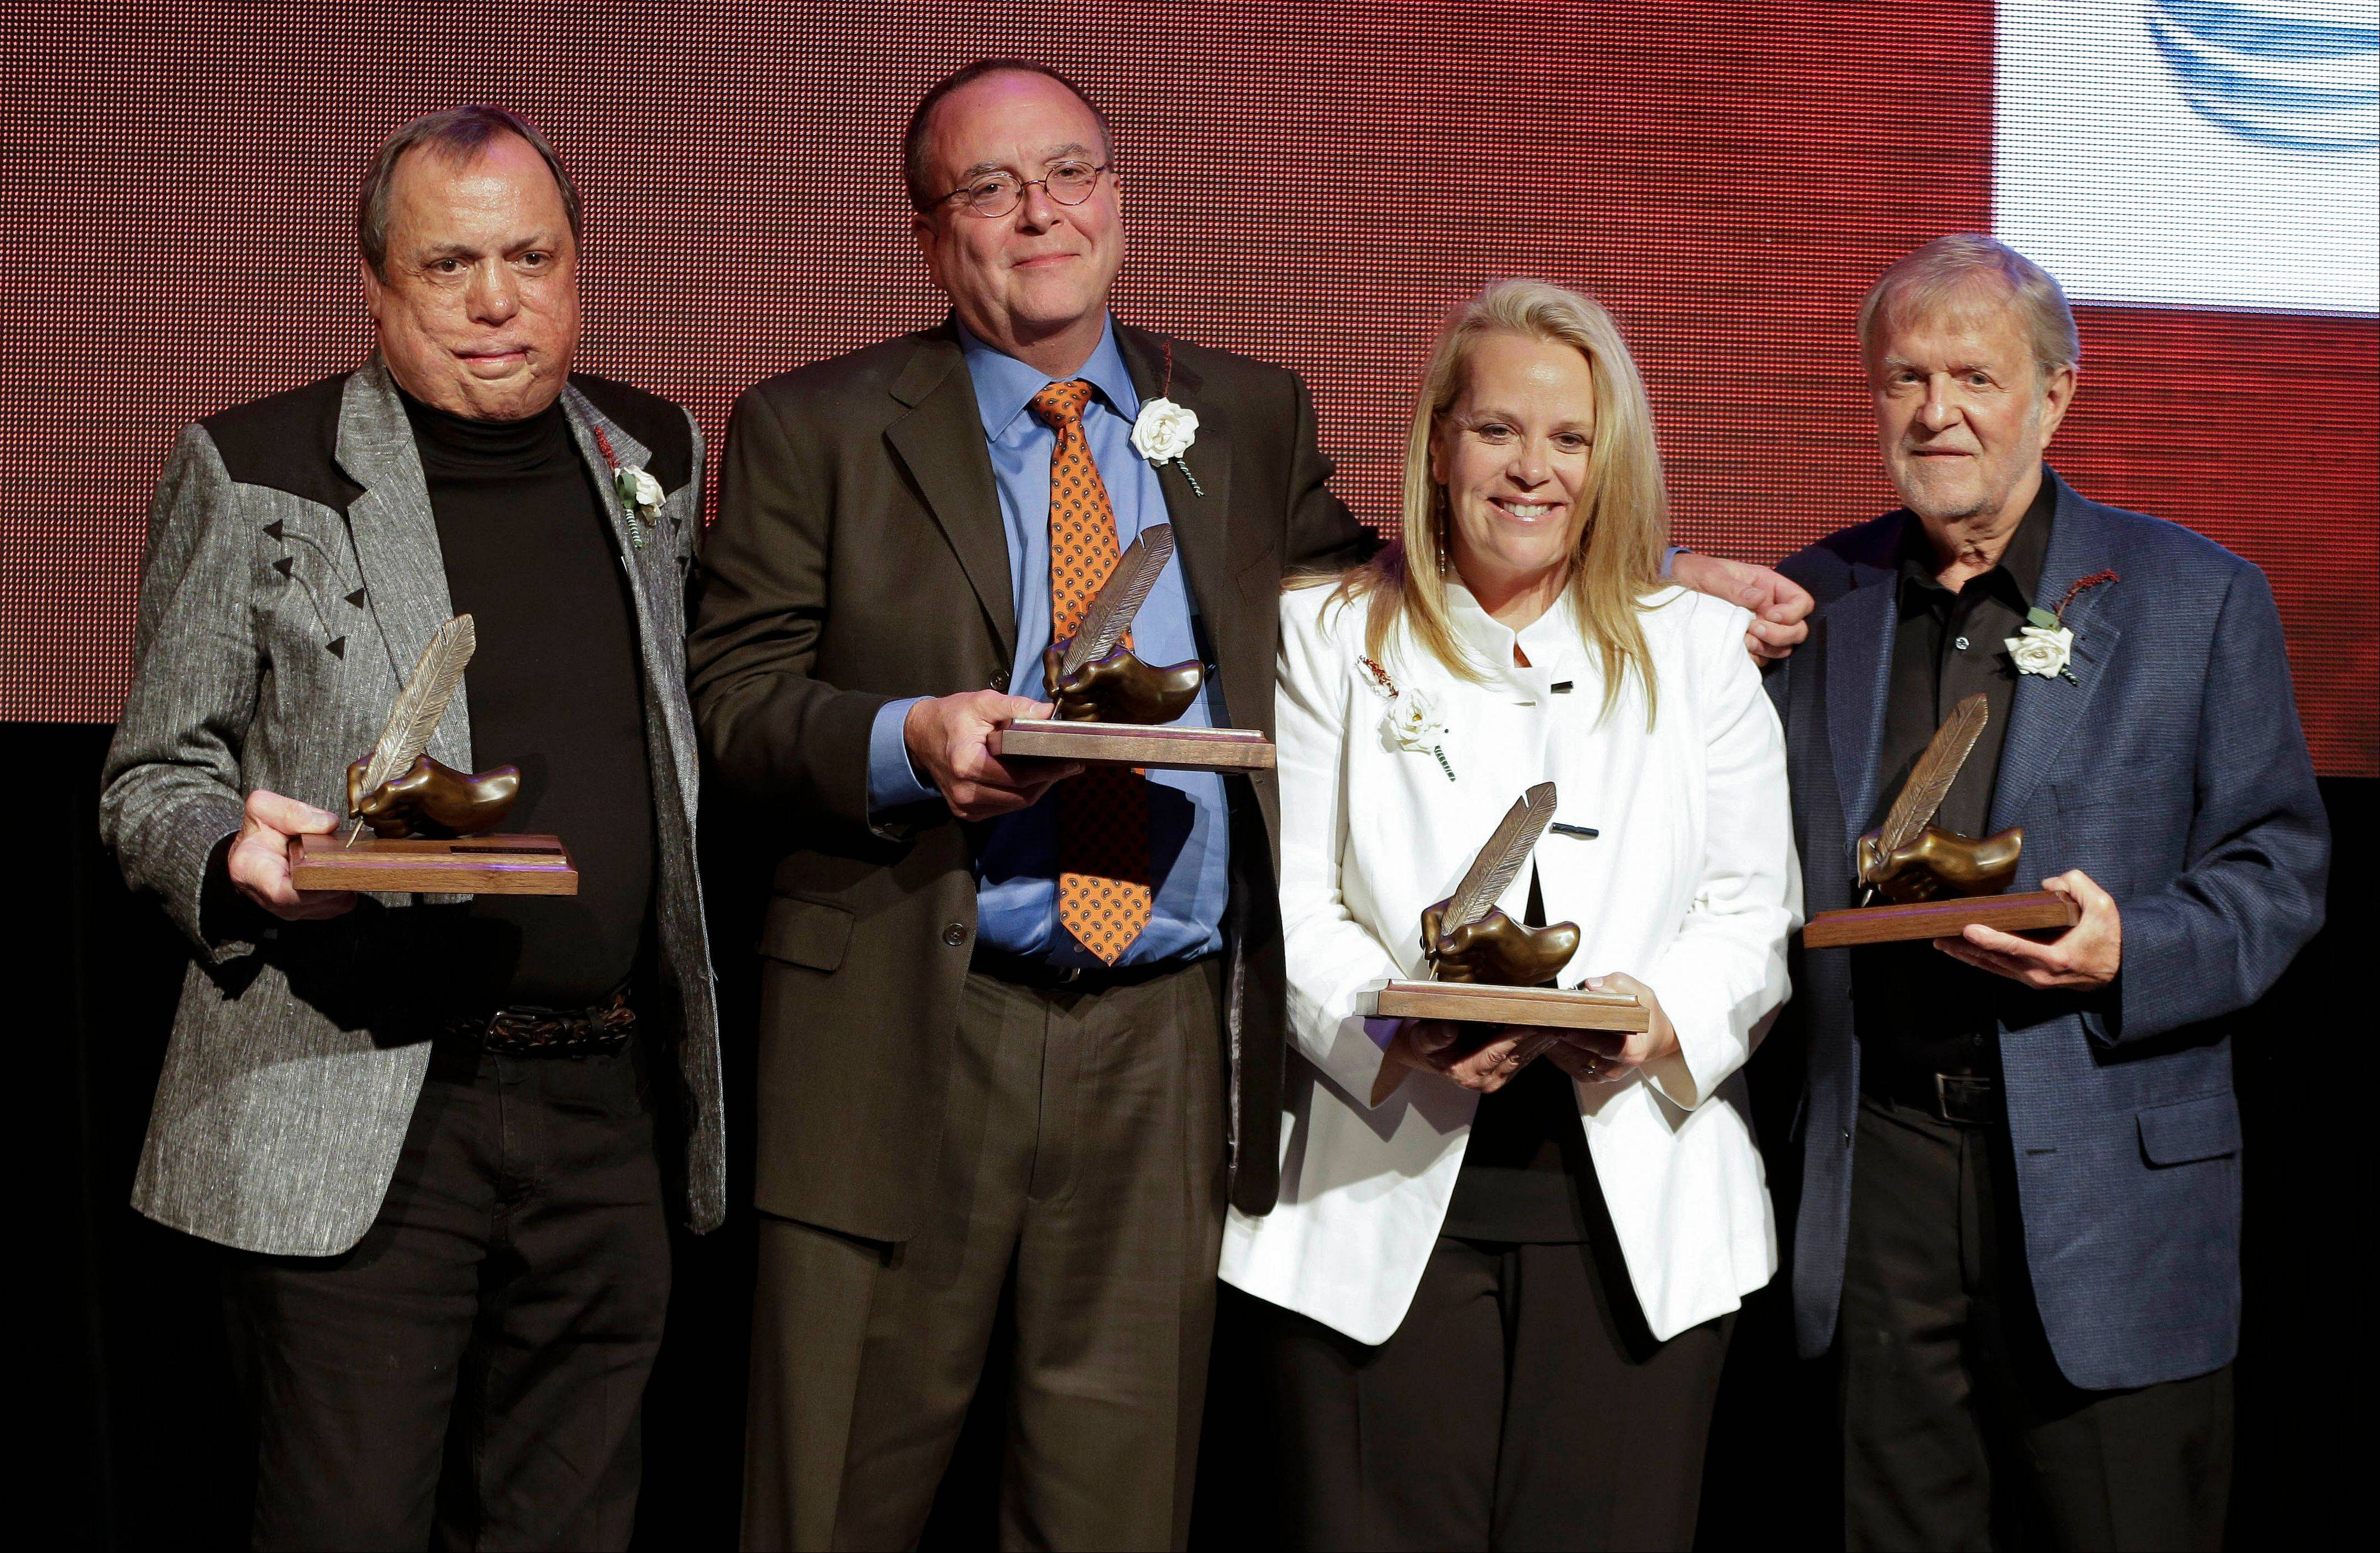 Kim Williams, left, Tony Arata, Mary Chapin Carpenter and Larry Henley were inducted into the Nashville Songwriters Hall of Fame on Sunday in Nashville, Tenn.